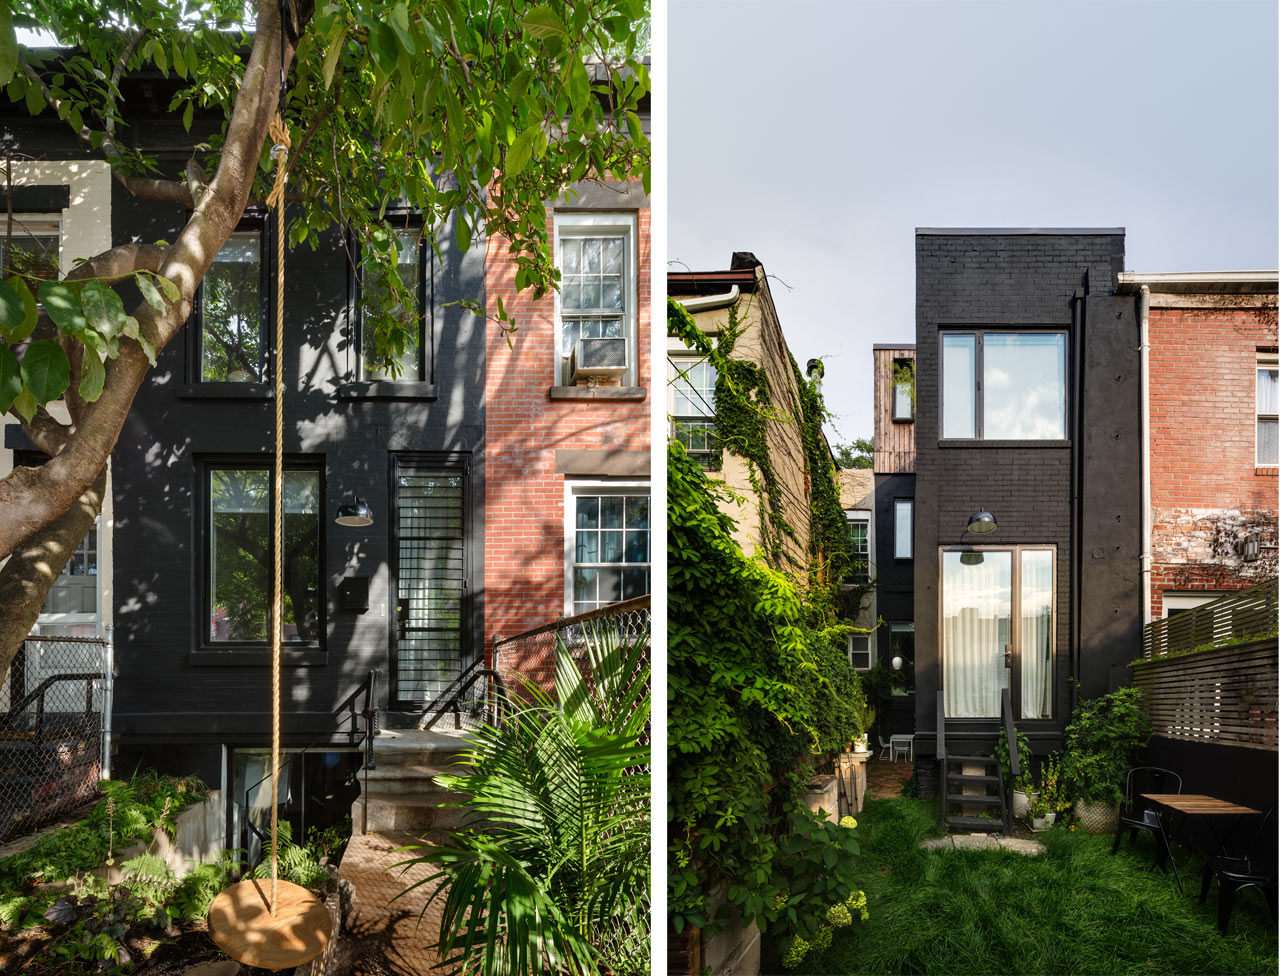 An 11-Foot-Wide Row House in Brooklyn by Office of Architecture